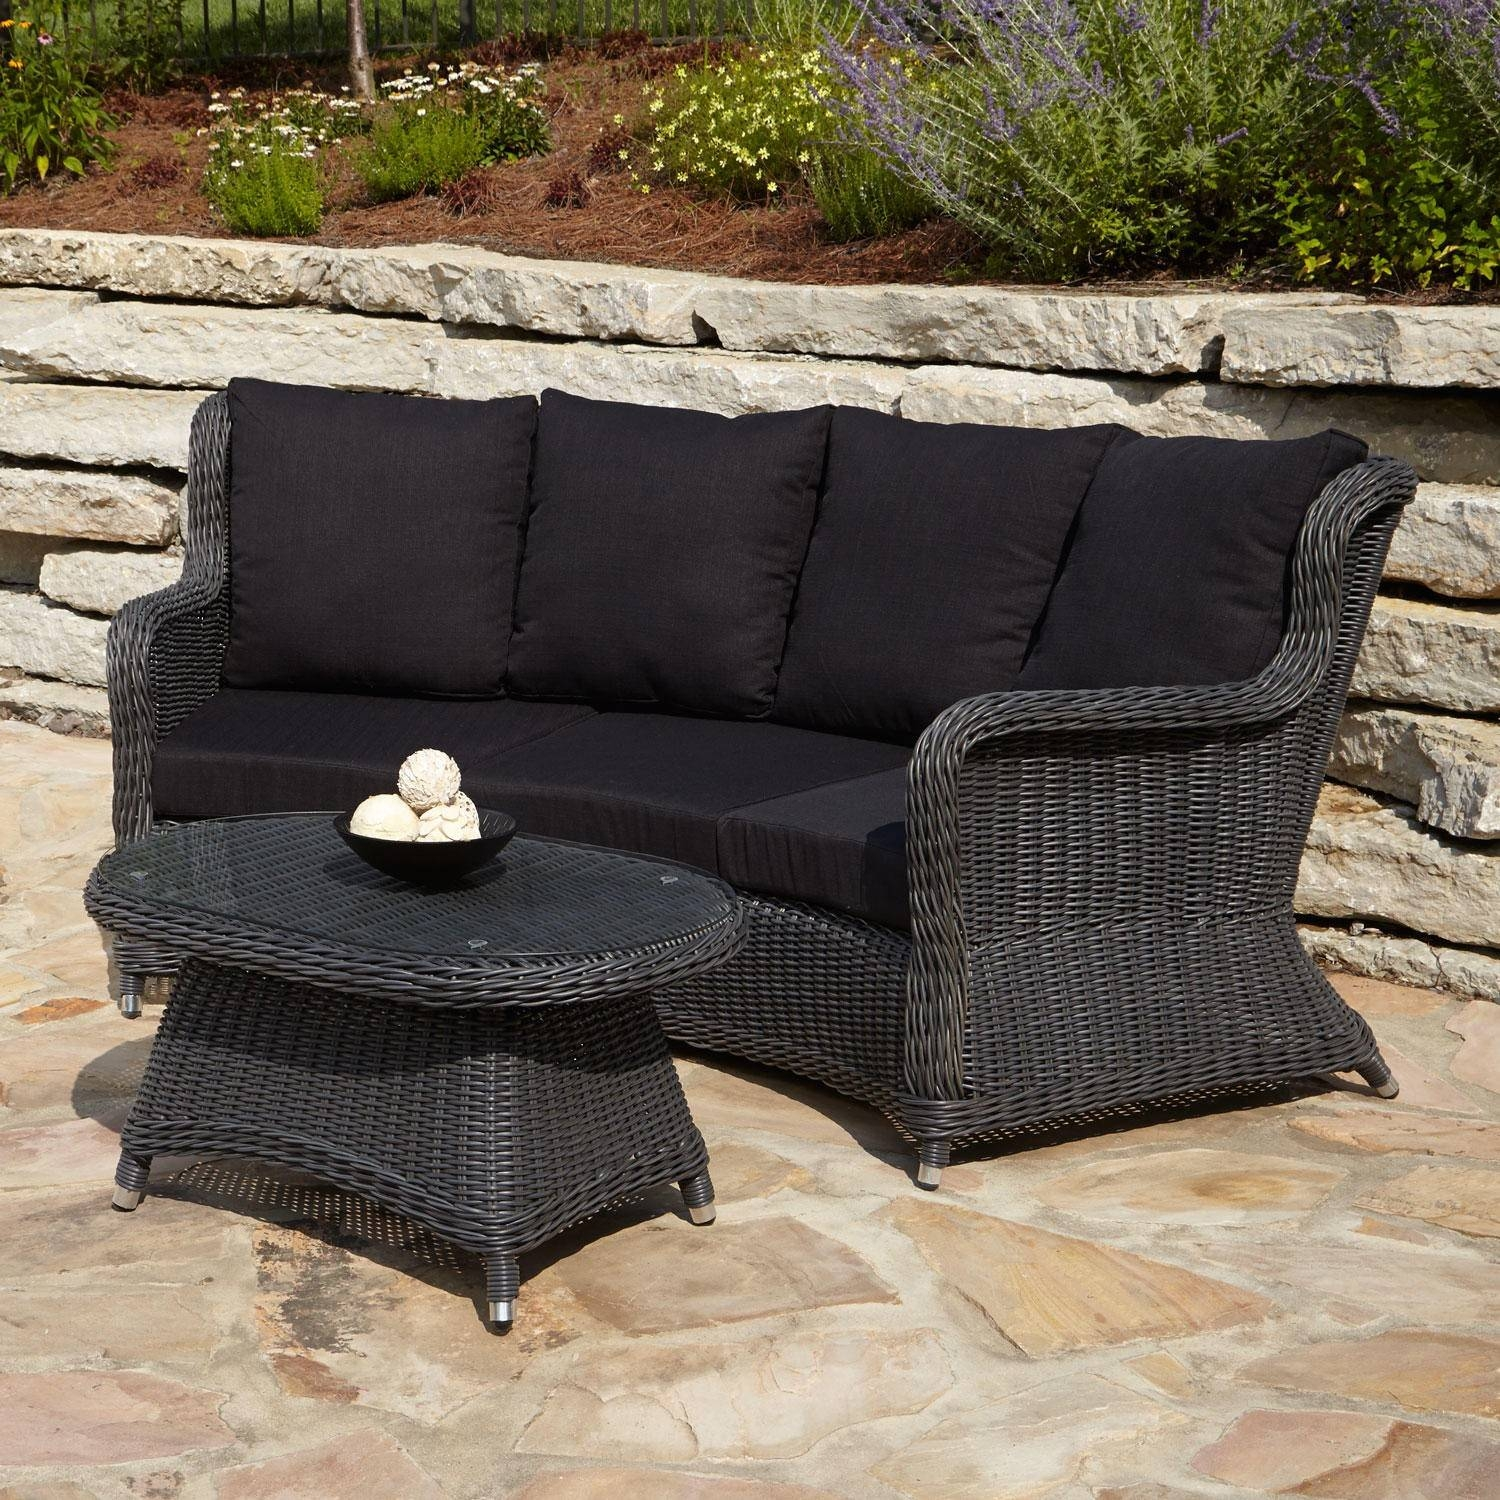 Outdoor Coffee Table Set | Roselawnlutheran within Patio Sofa Tables (Image 18 of 30)